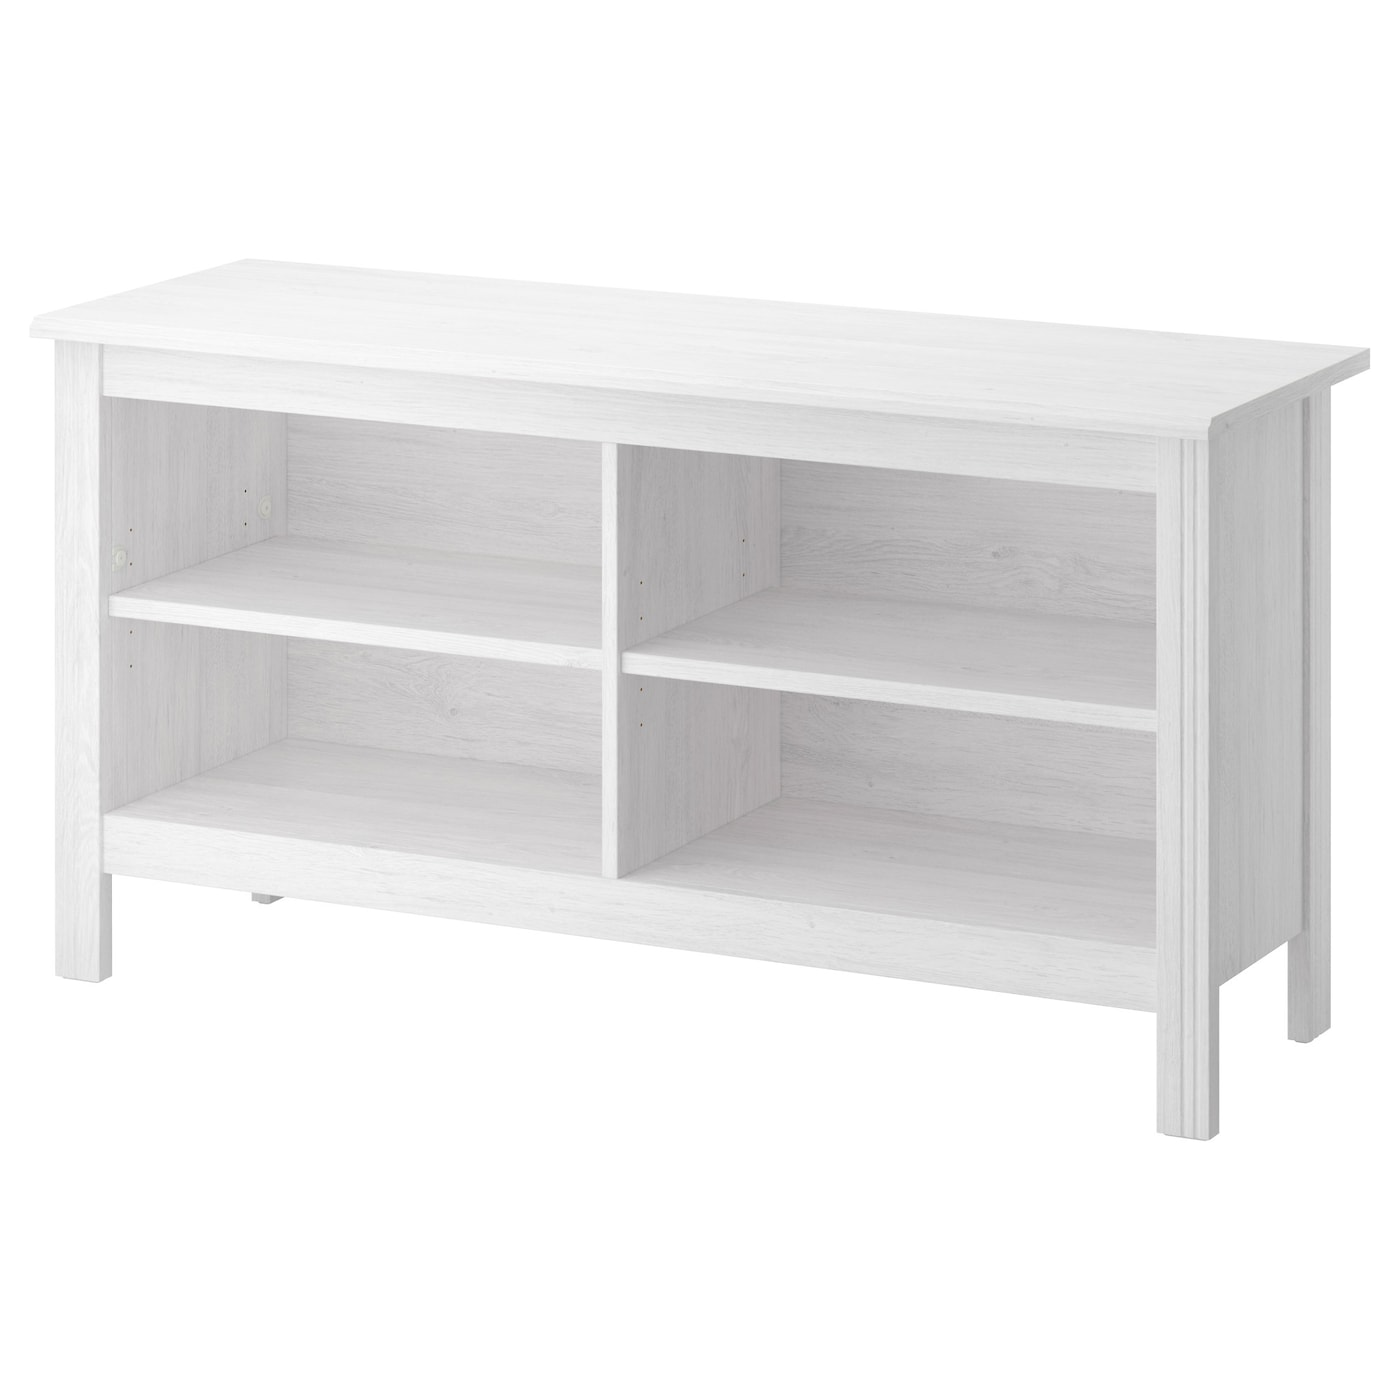 Awesome Tv Unit Brusali White Gmtry Best Dining Table And Chair Ideas Images Gmtryco